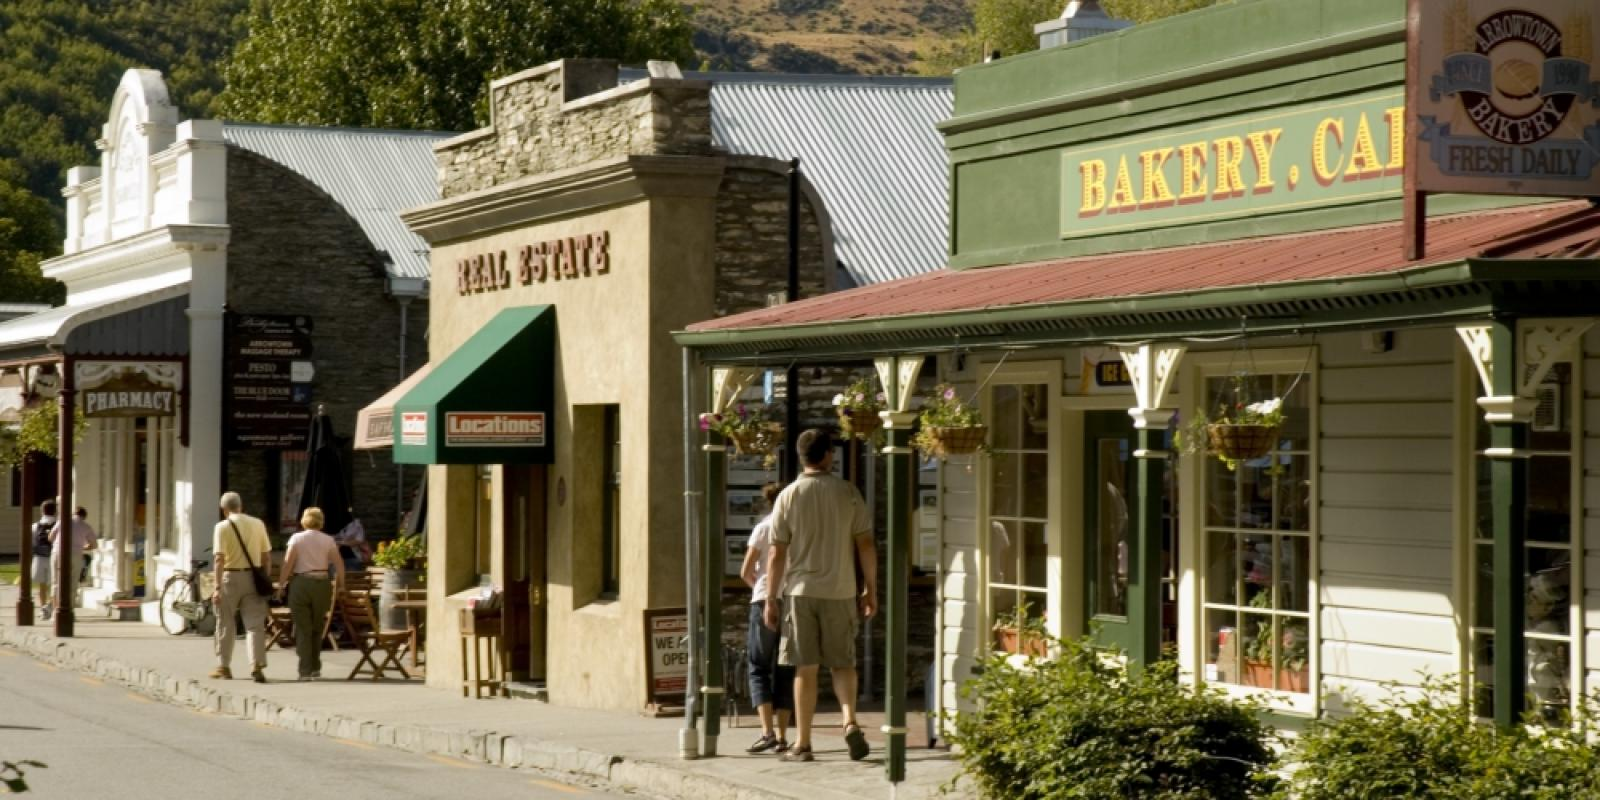 Arrowtown cafes and retail